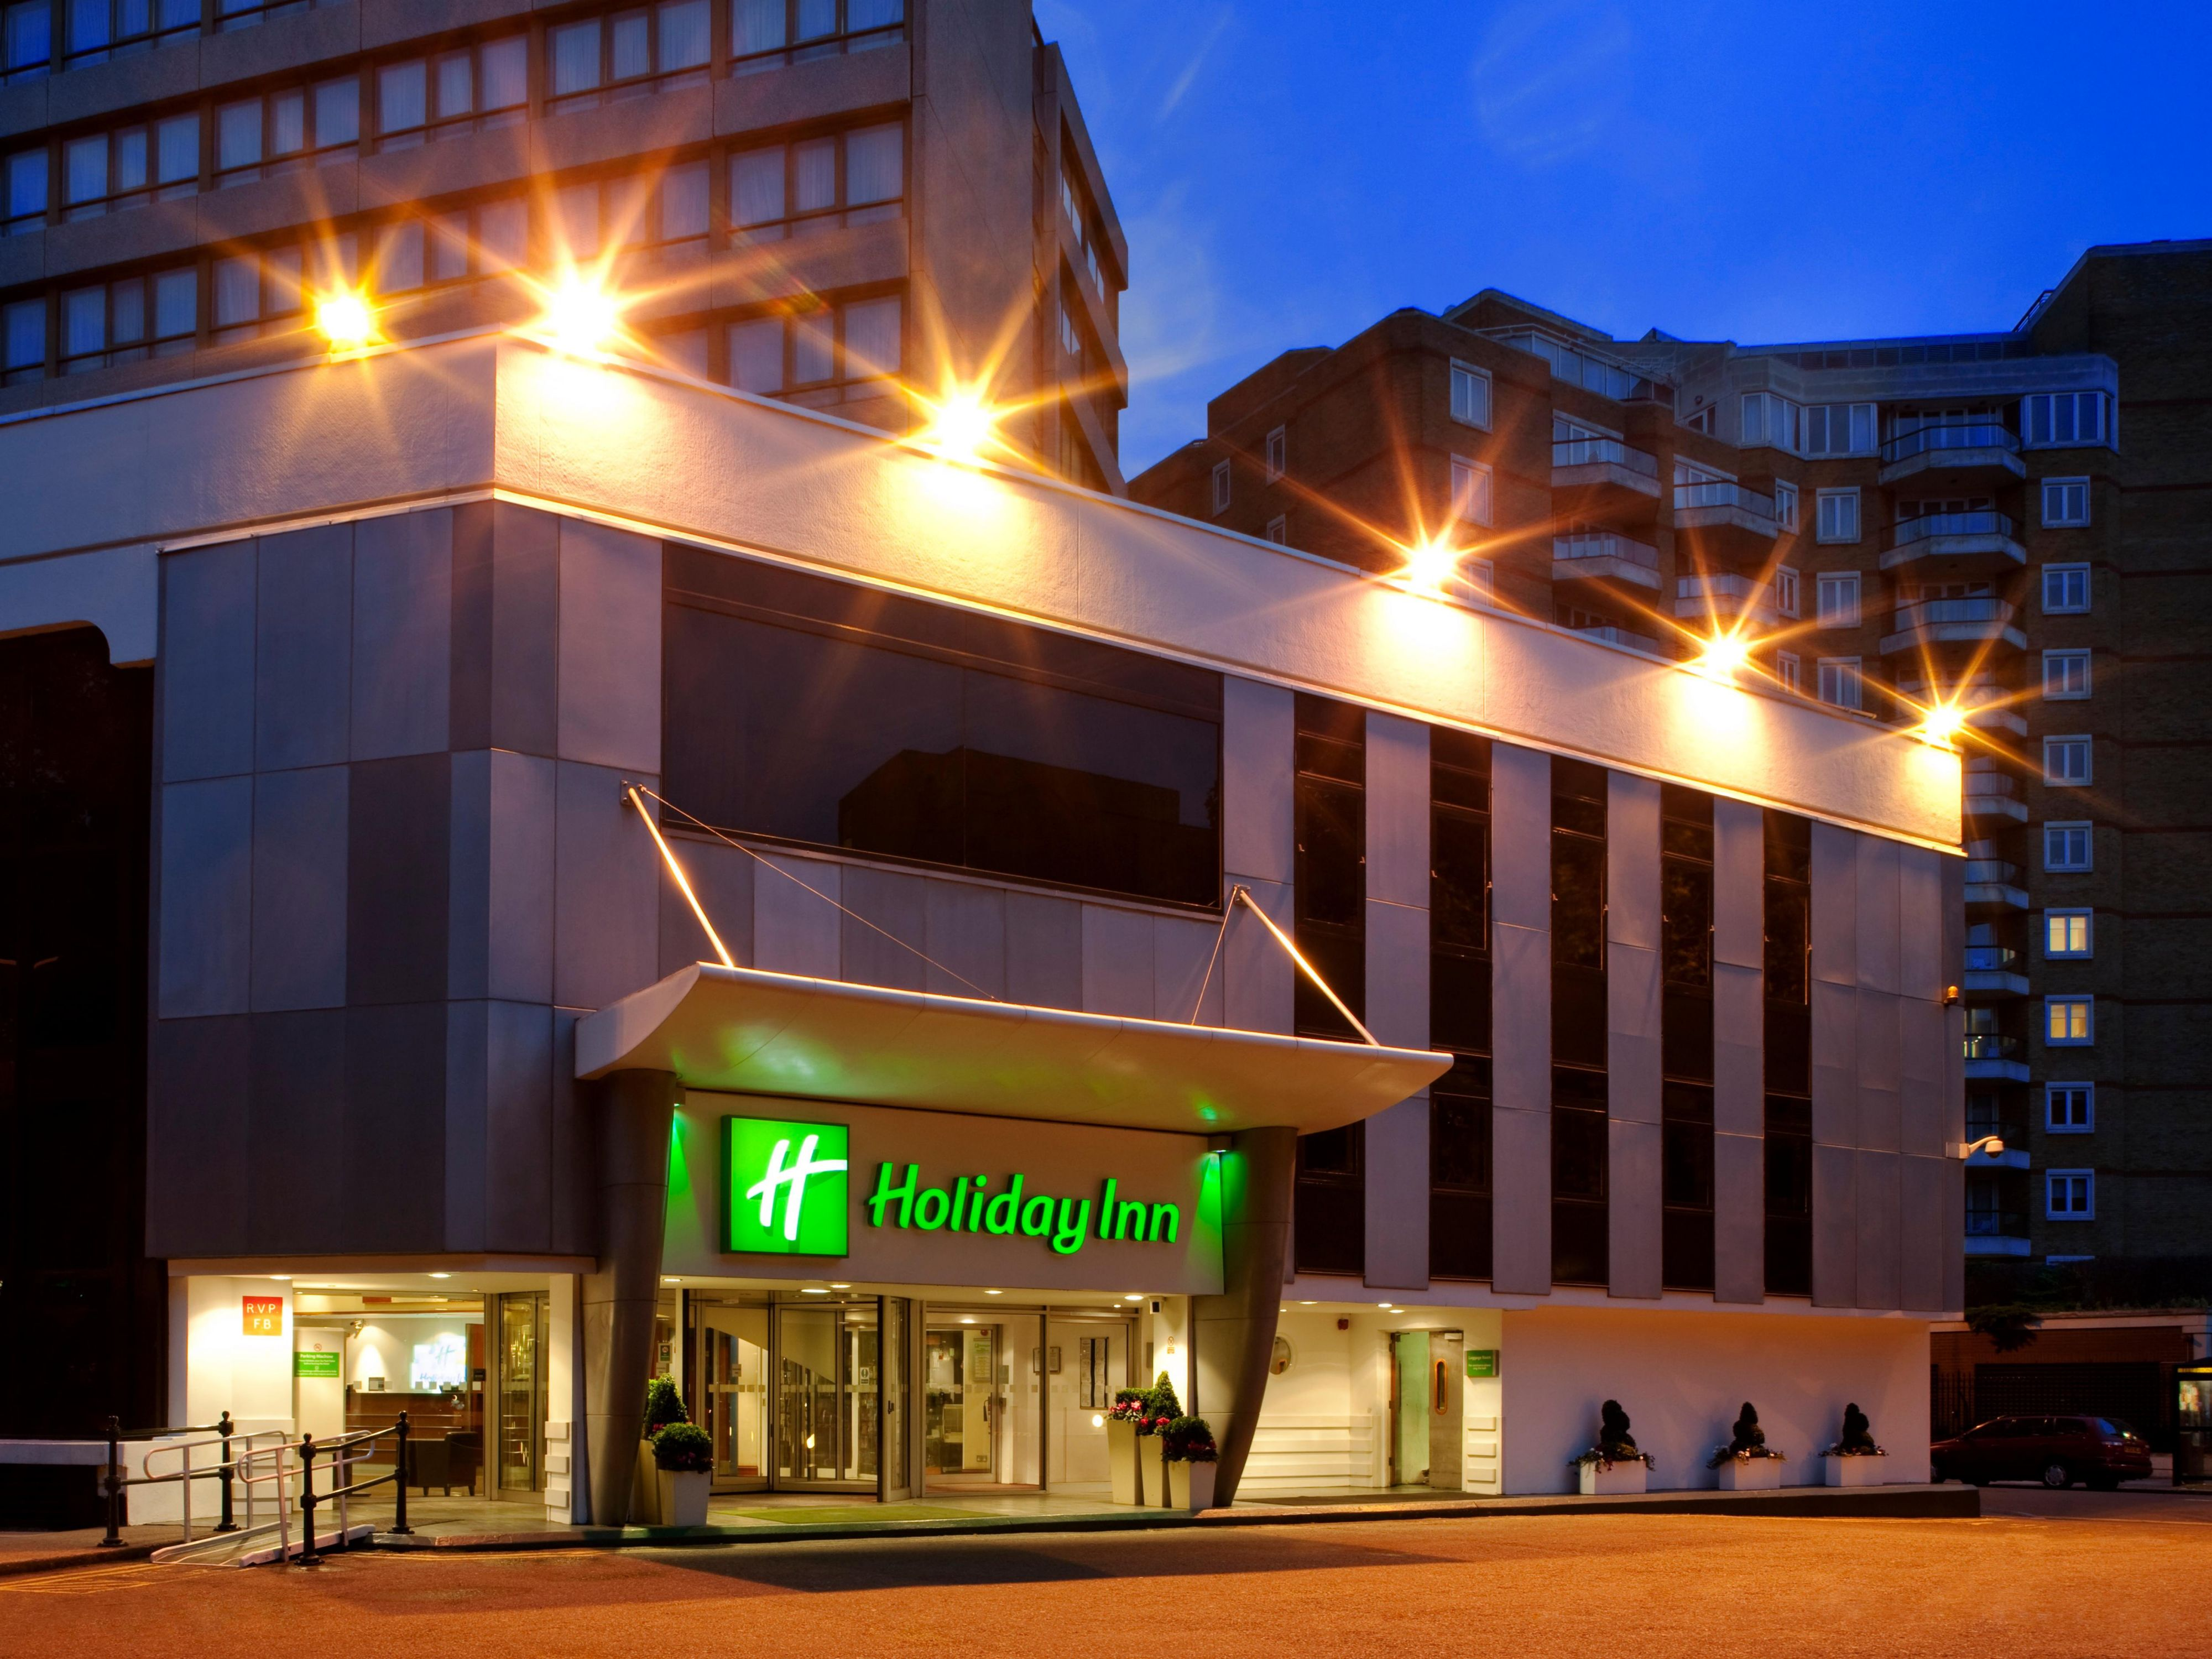 Holiday Inn Kensington Forum Hotel Entrance - Night